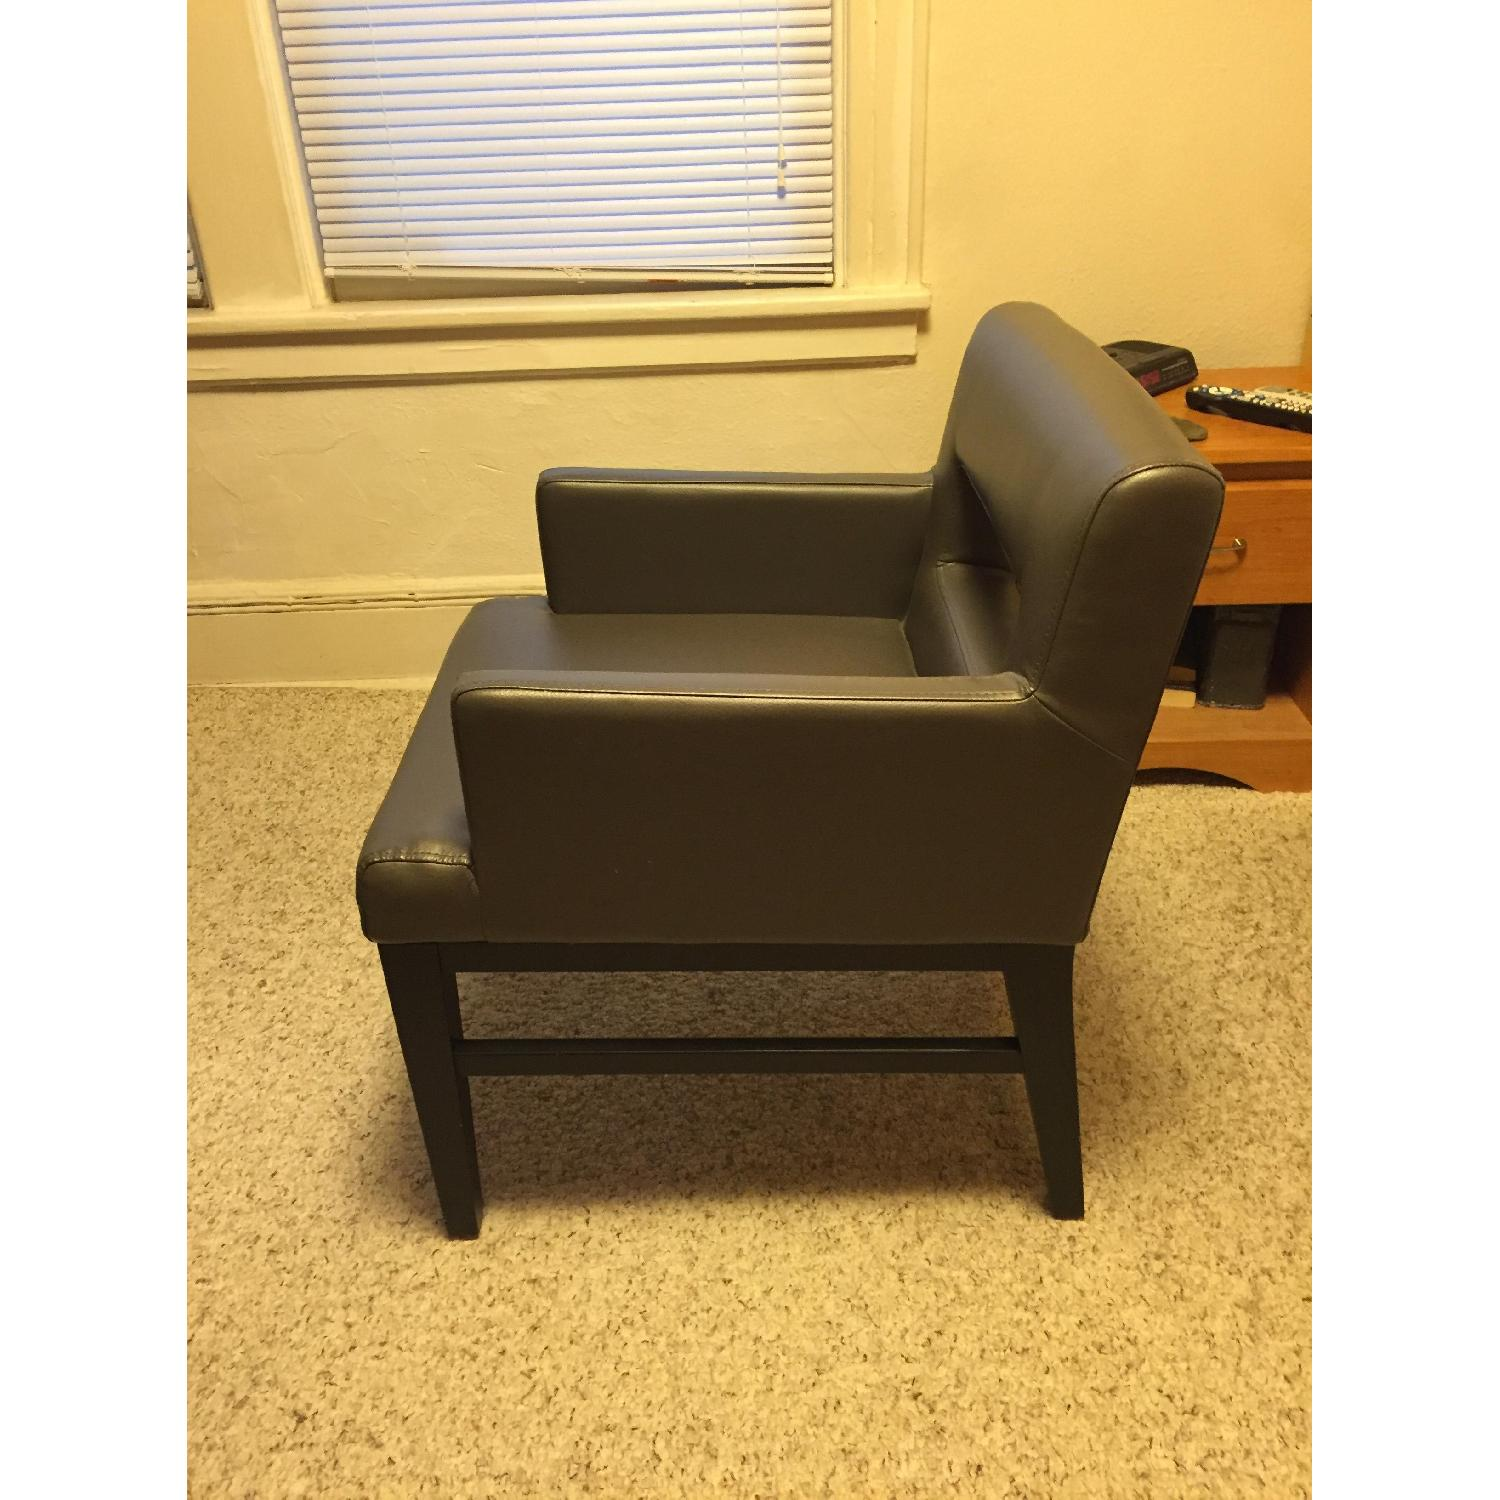 Home Goods Jason Furniture Upright Chair - image-2